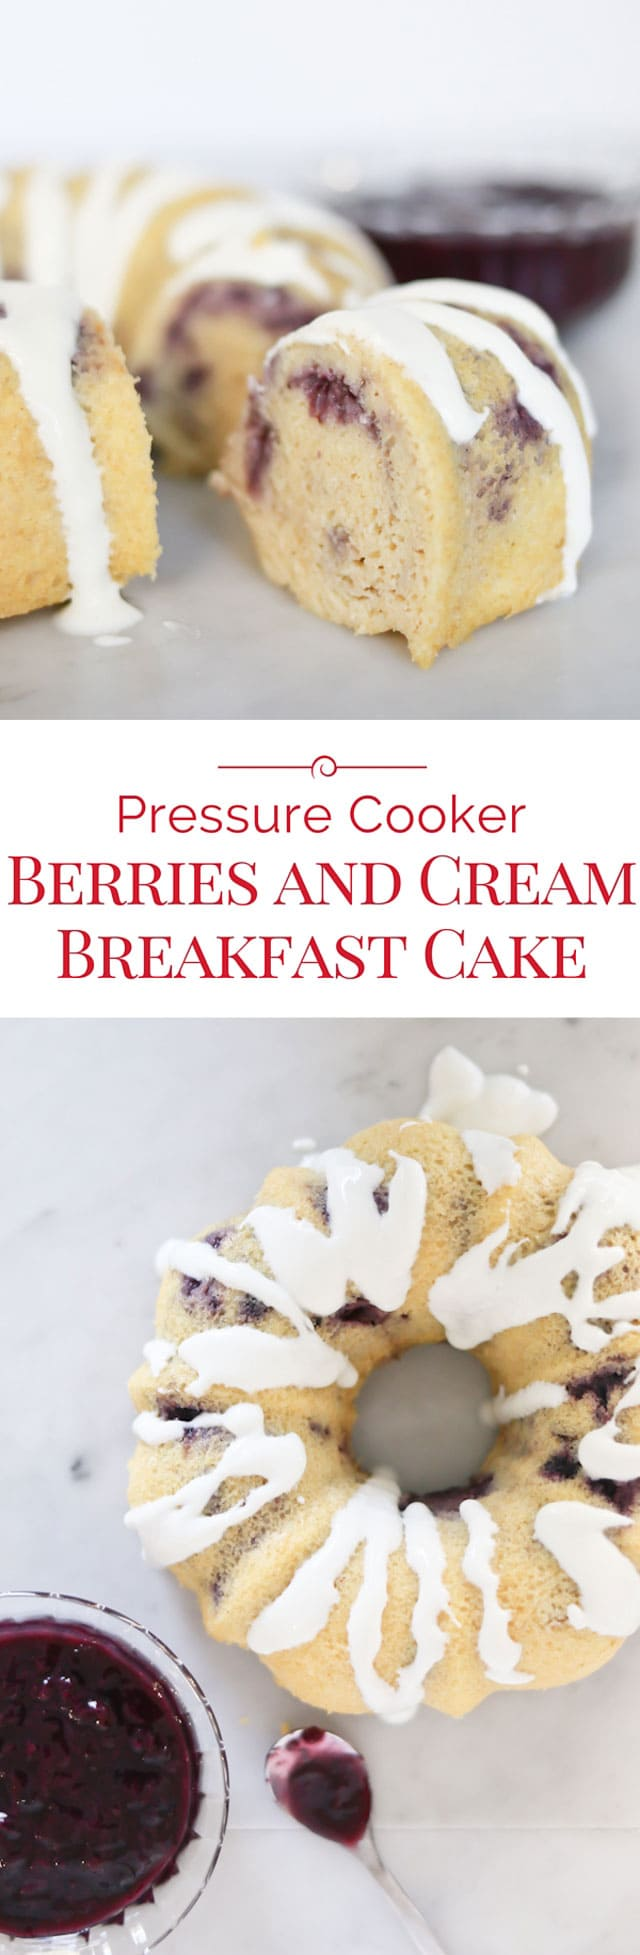 Berries and Cream Breakfast Cake is pretty enough to be called a cake, but healthy enough to call it breakfast! Make mornings special with this 100% whole grain, protein rich breakfast cake recipe for your Pressure Cooker! #instantpot #pressurecooker #breakfastrecipe #cake via @PressureCook2da